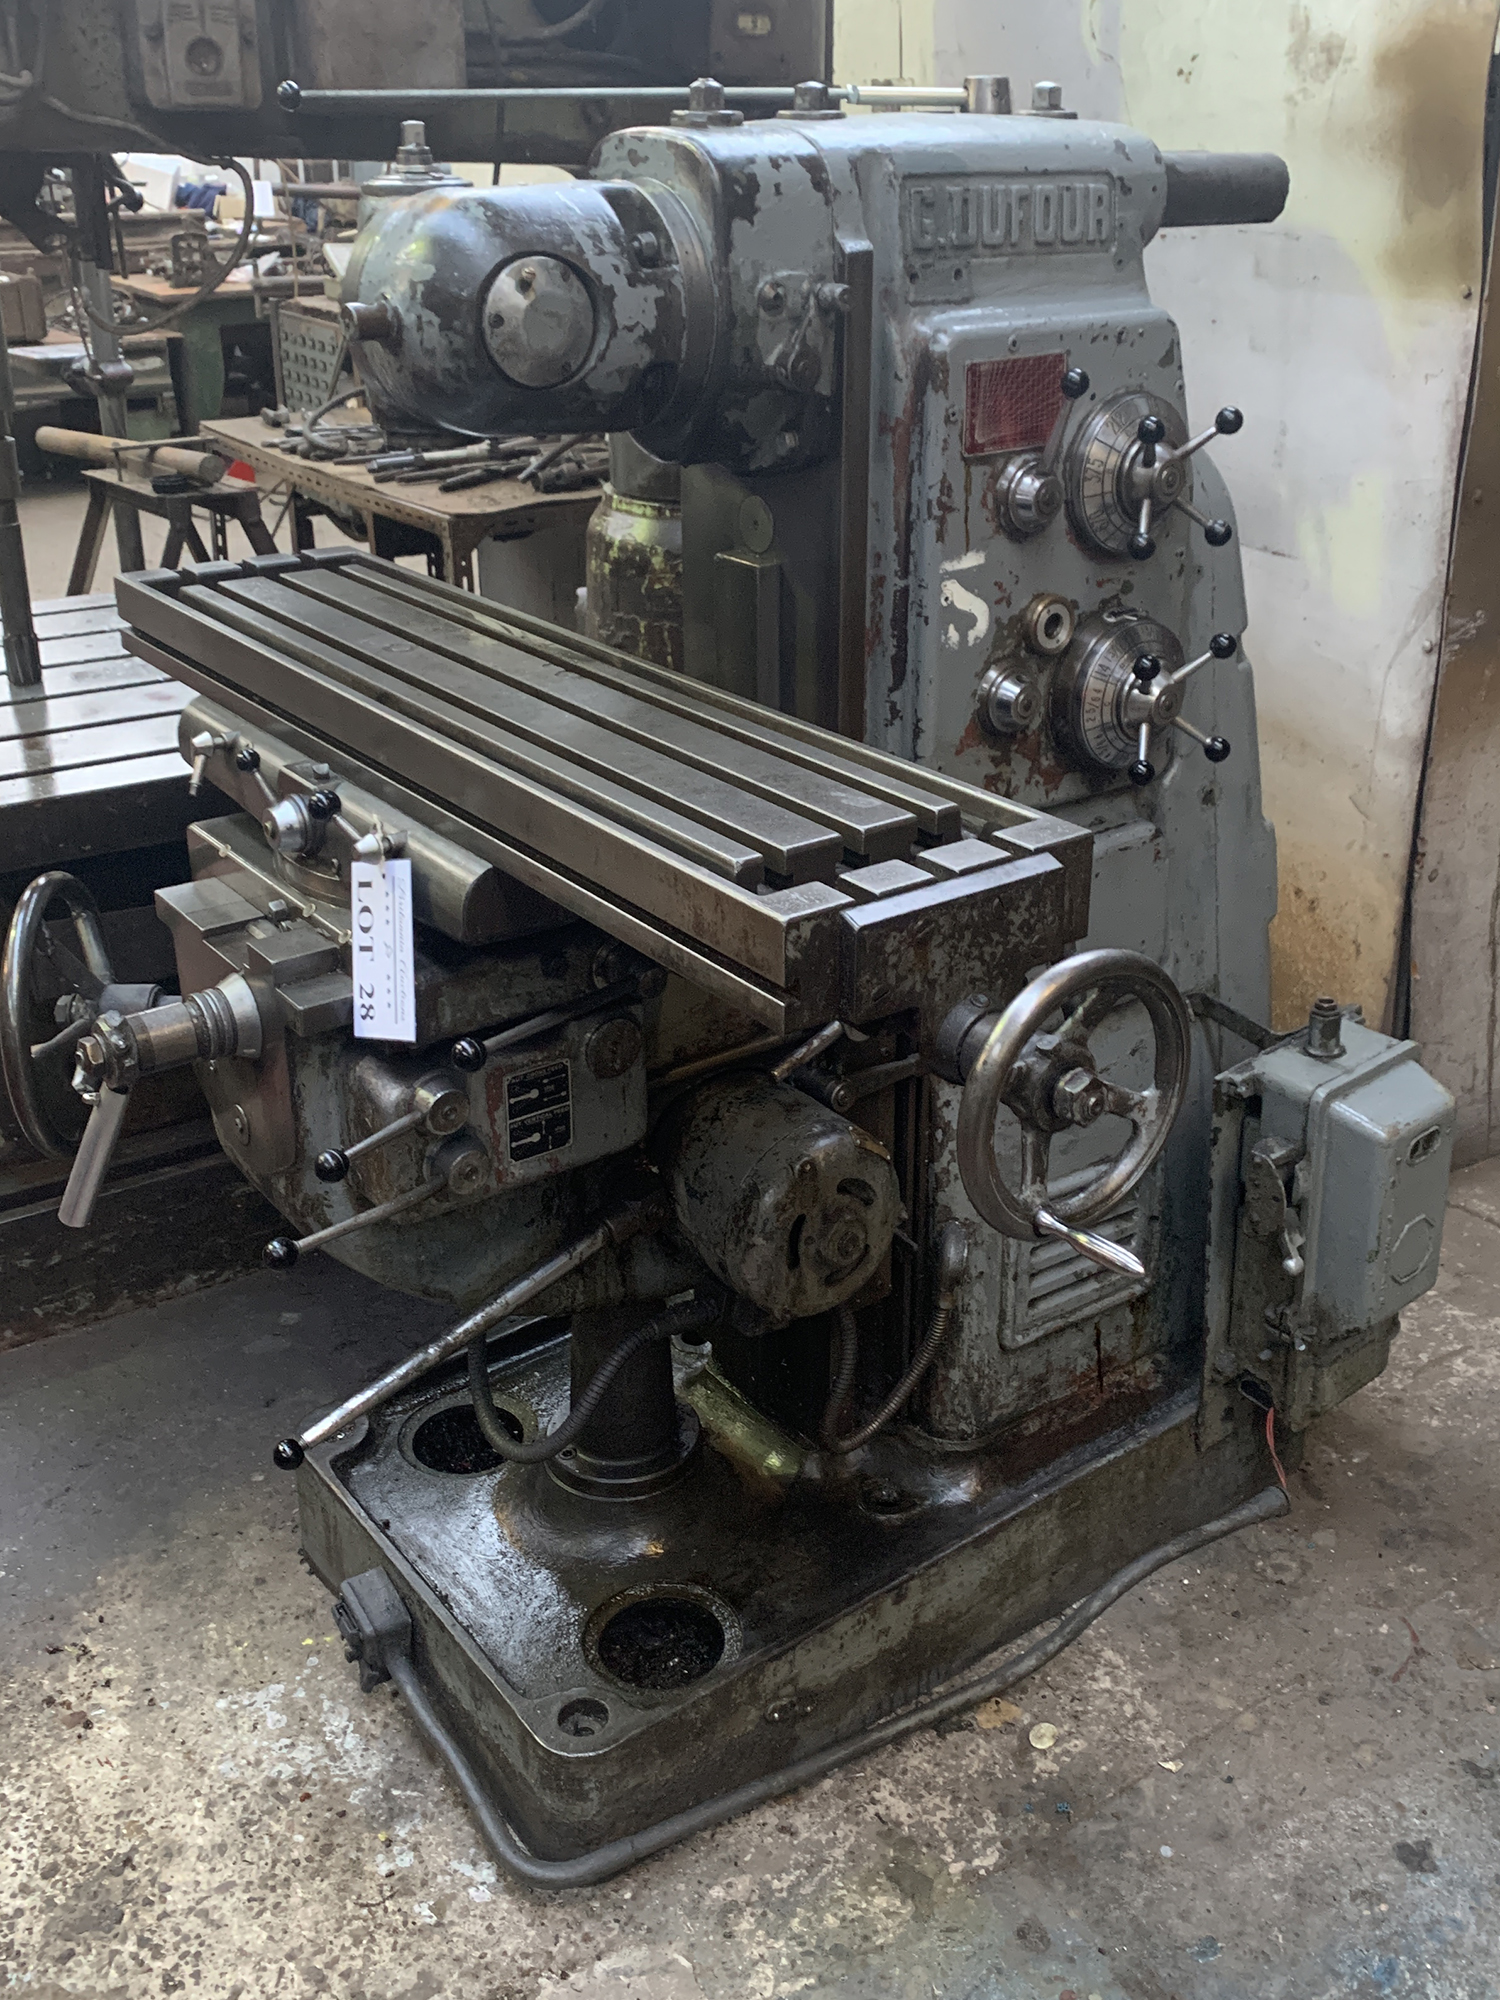 Dufour Universal Milling Machine with Double Swivel Head. Table Size 1100 x 250mm.